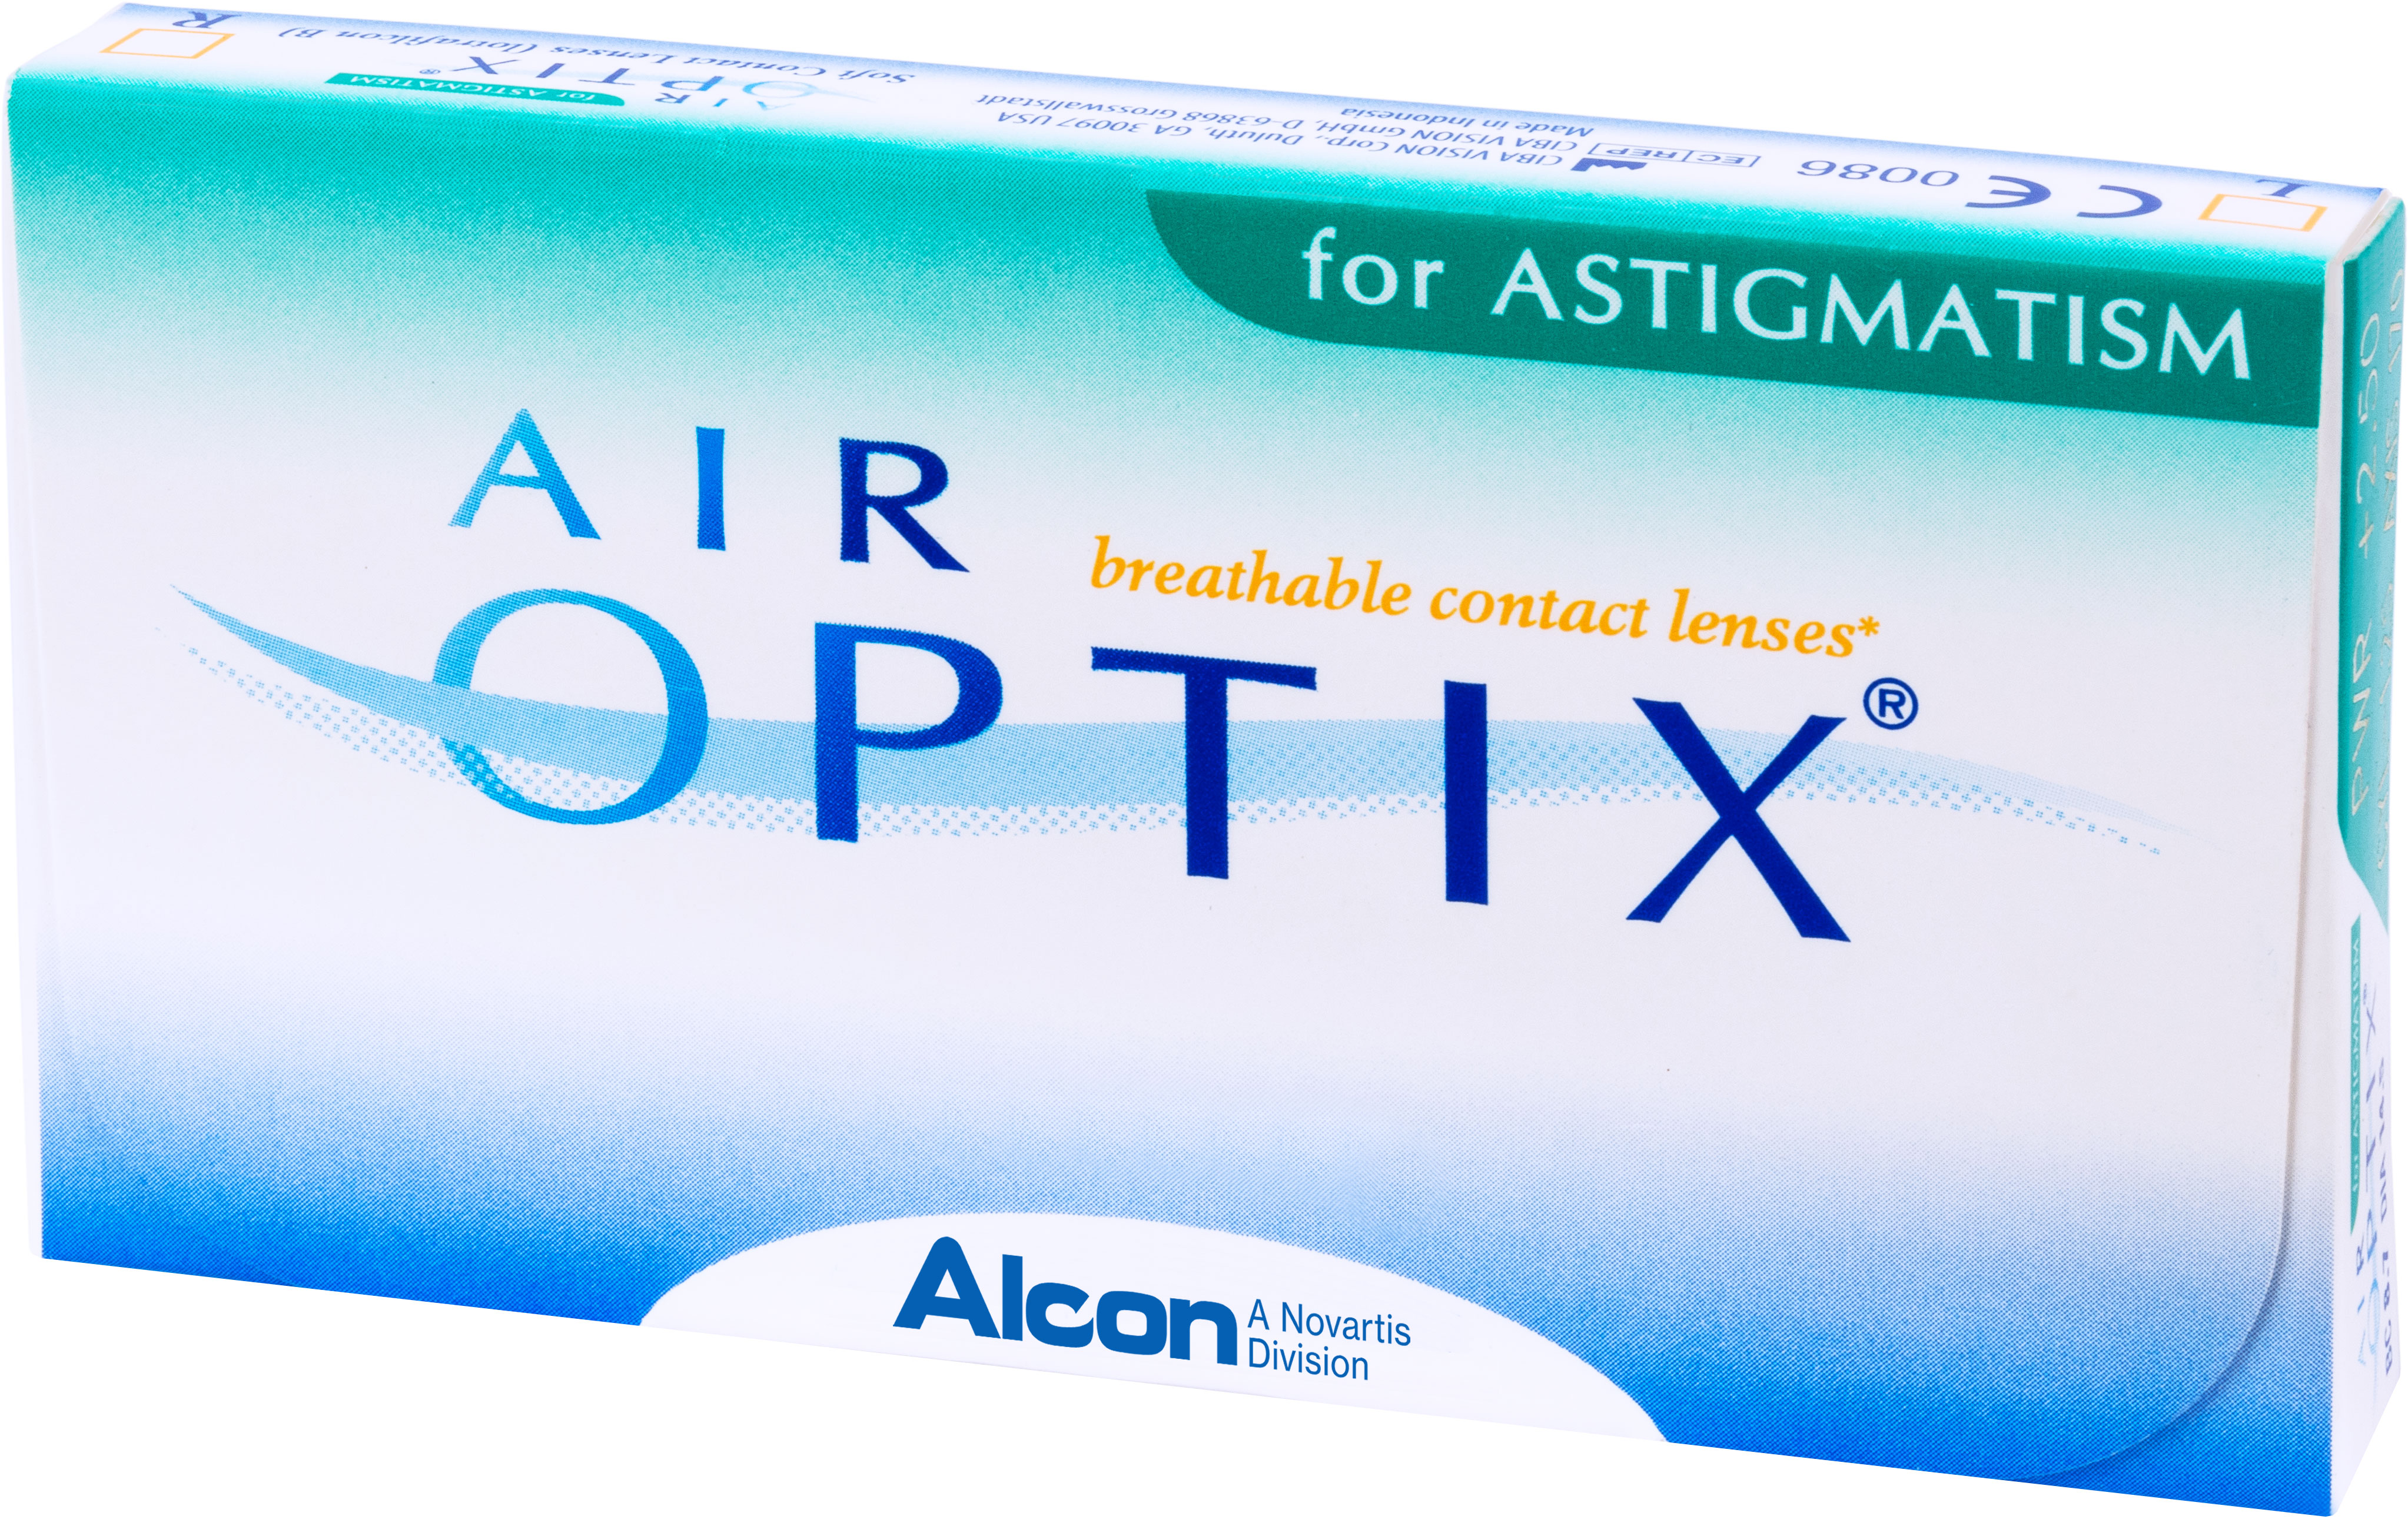 Аlcon контактные линзы Air Optix for Astigmatism 3pk /BC 8.7/DIA14.5/PWR +4.00/CYL -1.75/AXIS 120100026387with Hydraclear